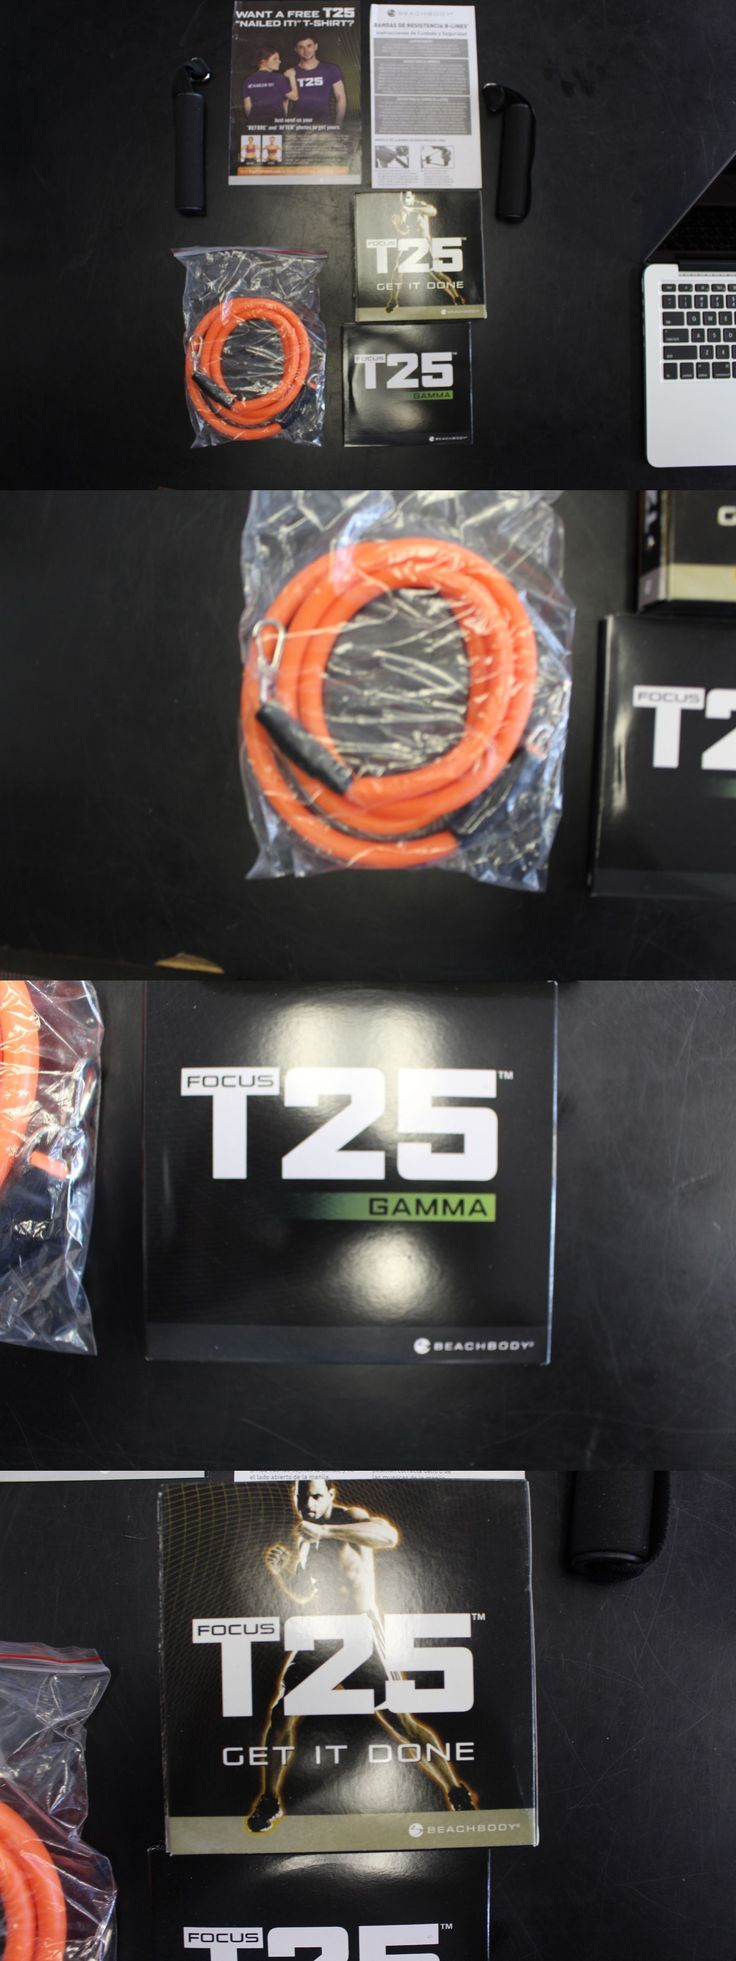 Fitness DVDs 109130: Focus T25 Beachbody 14 Disc Complete Set -> BUY IT NOW ONLY: $40 on eBay!